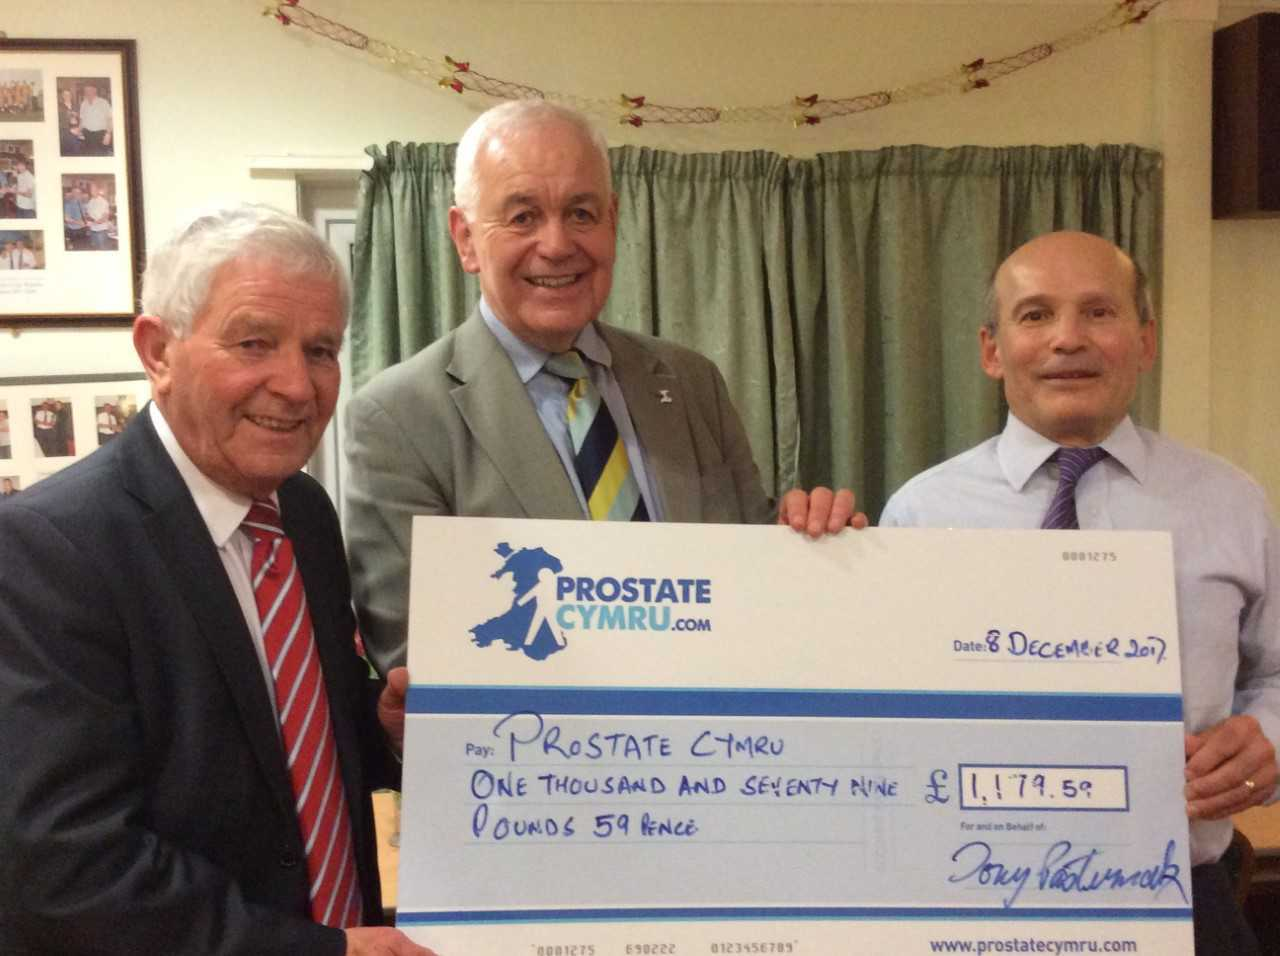 Pictured is Glamorgan and England batting legend Alan Jones, receiving the cheque from Tony Pasternak on behalf of Prostate Cymru. Also pictured is John Daniels who is a trustee of the charity.